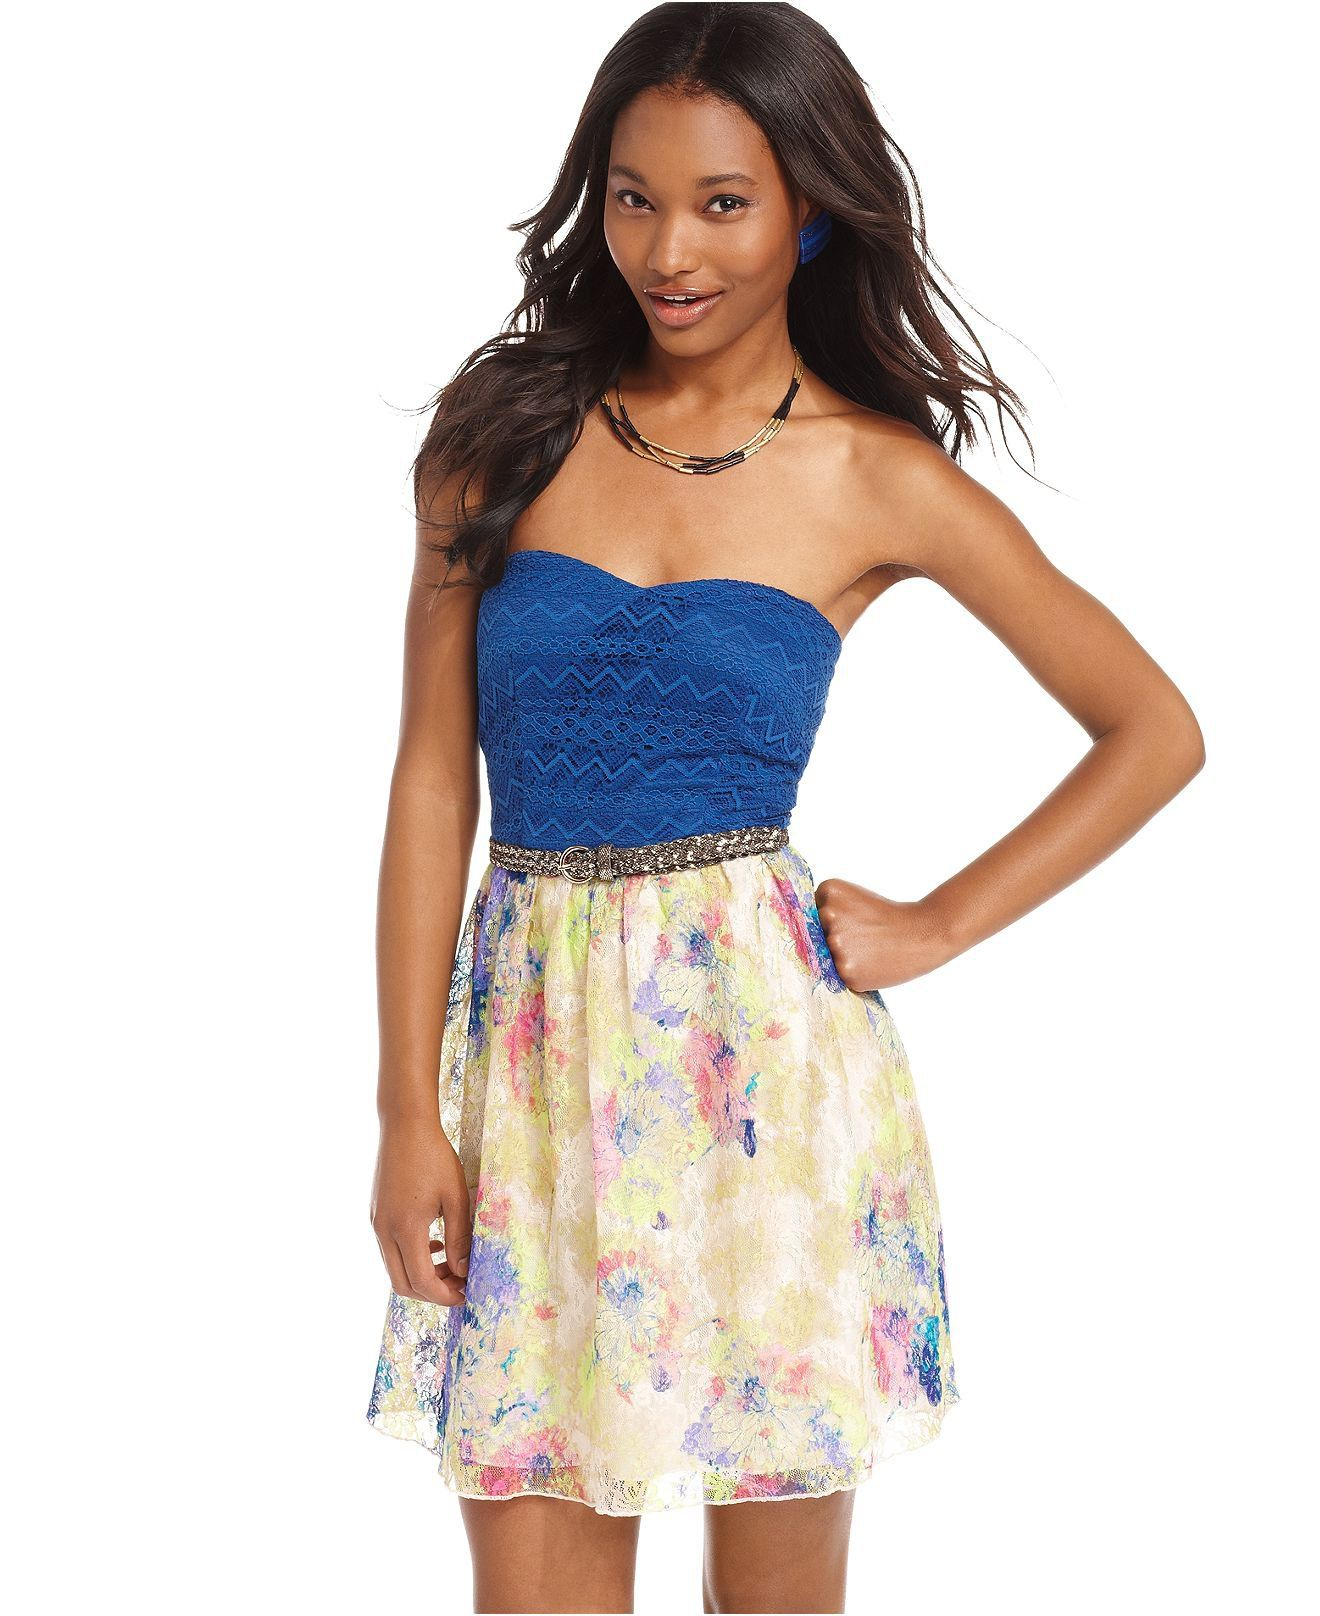 City Studios Juniors Dress, Strapless Lace Belted Floral-Print ...